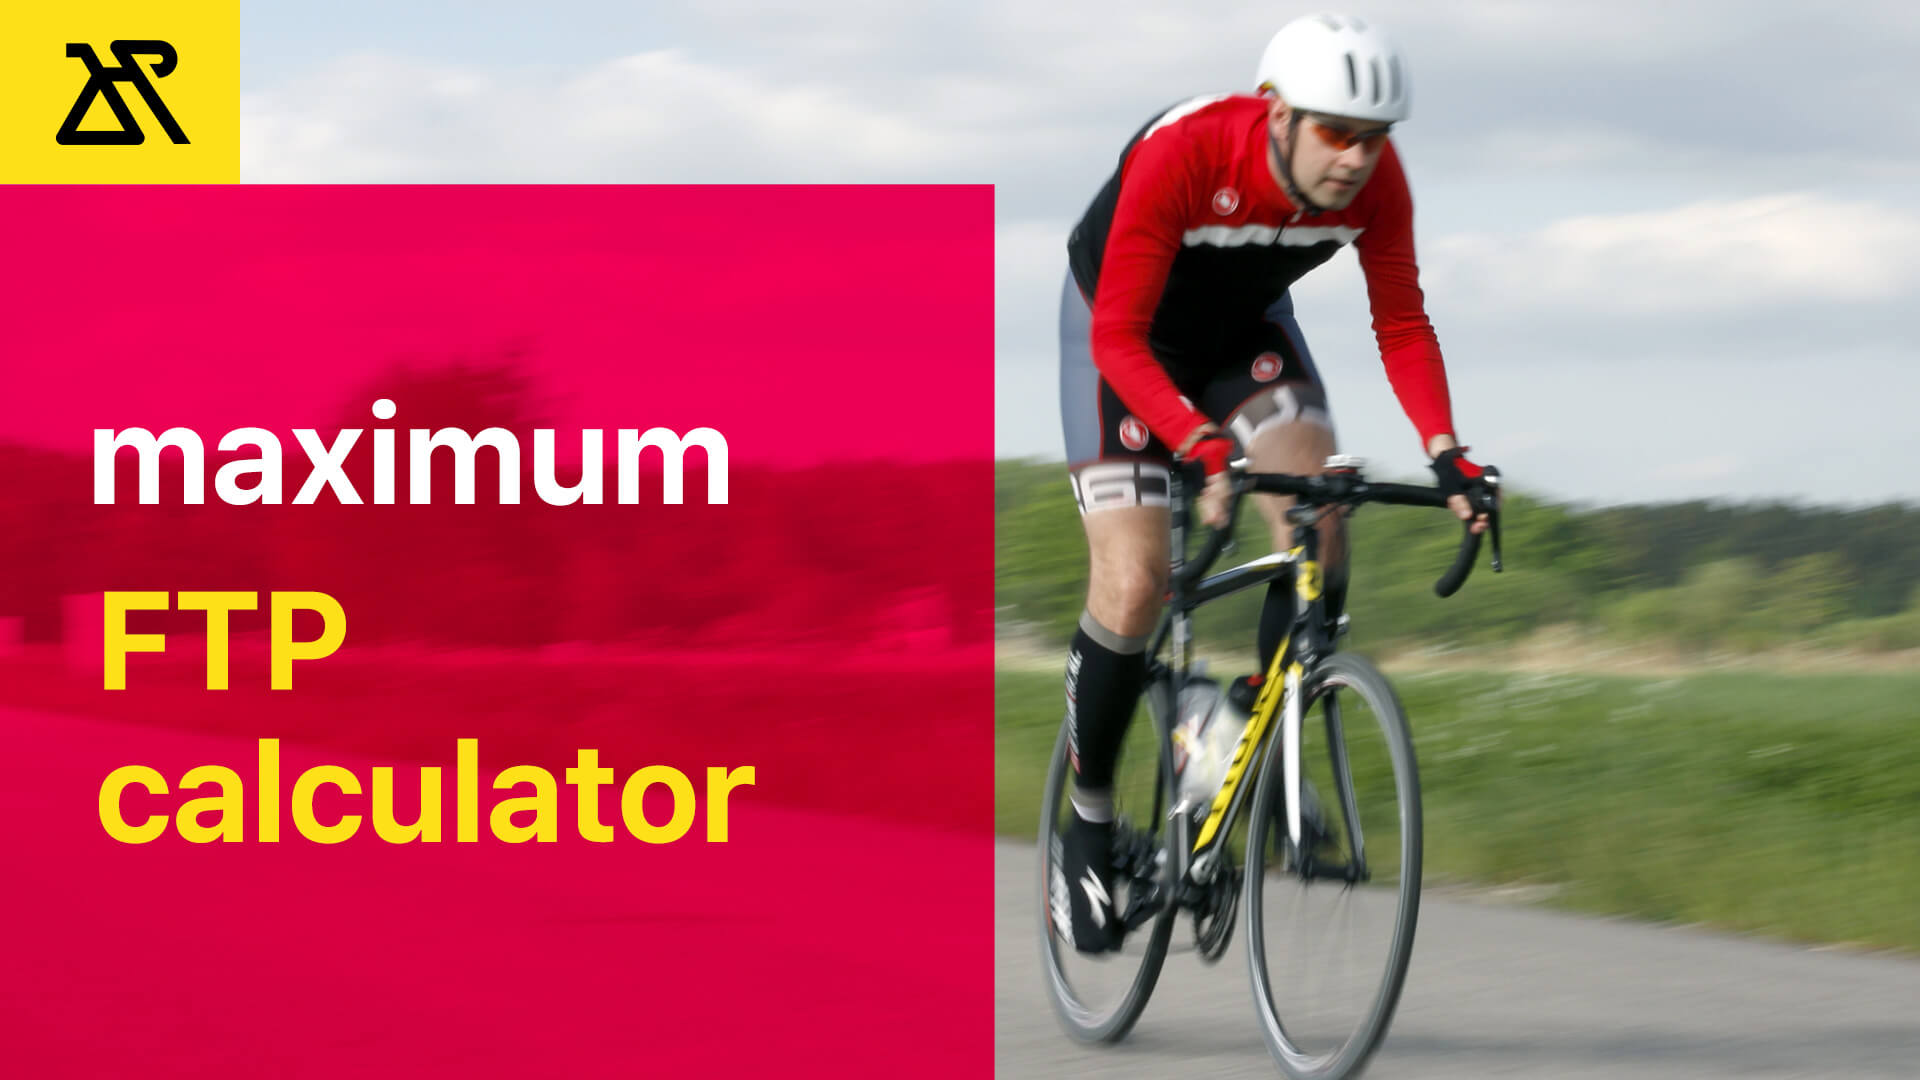 Maximum Functional Threshold Power (FTP) Calculator